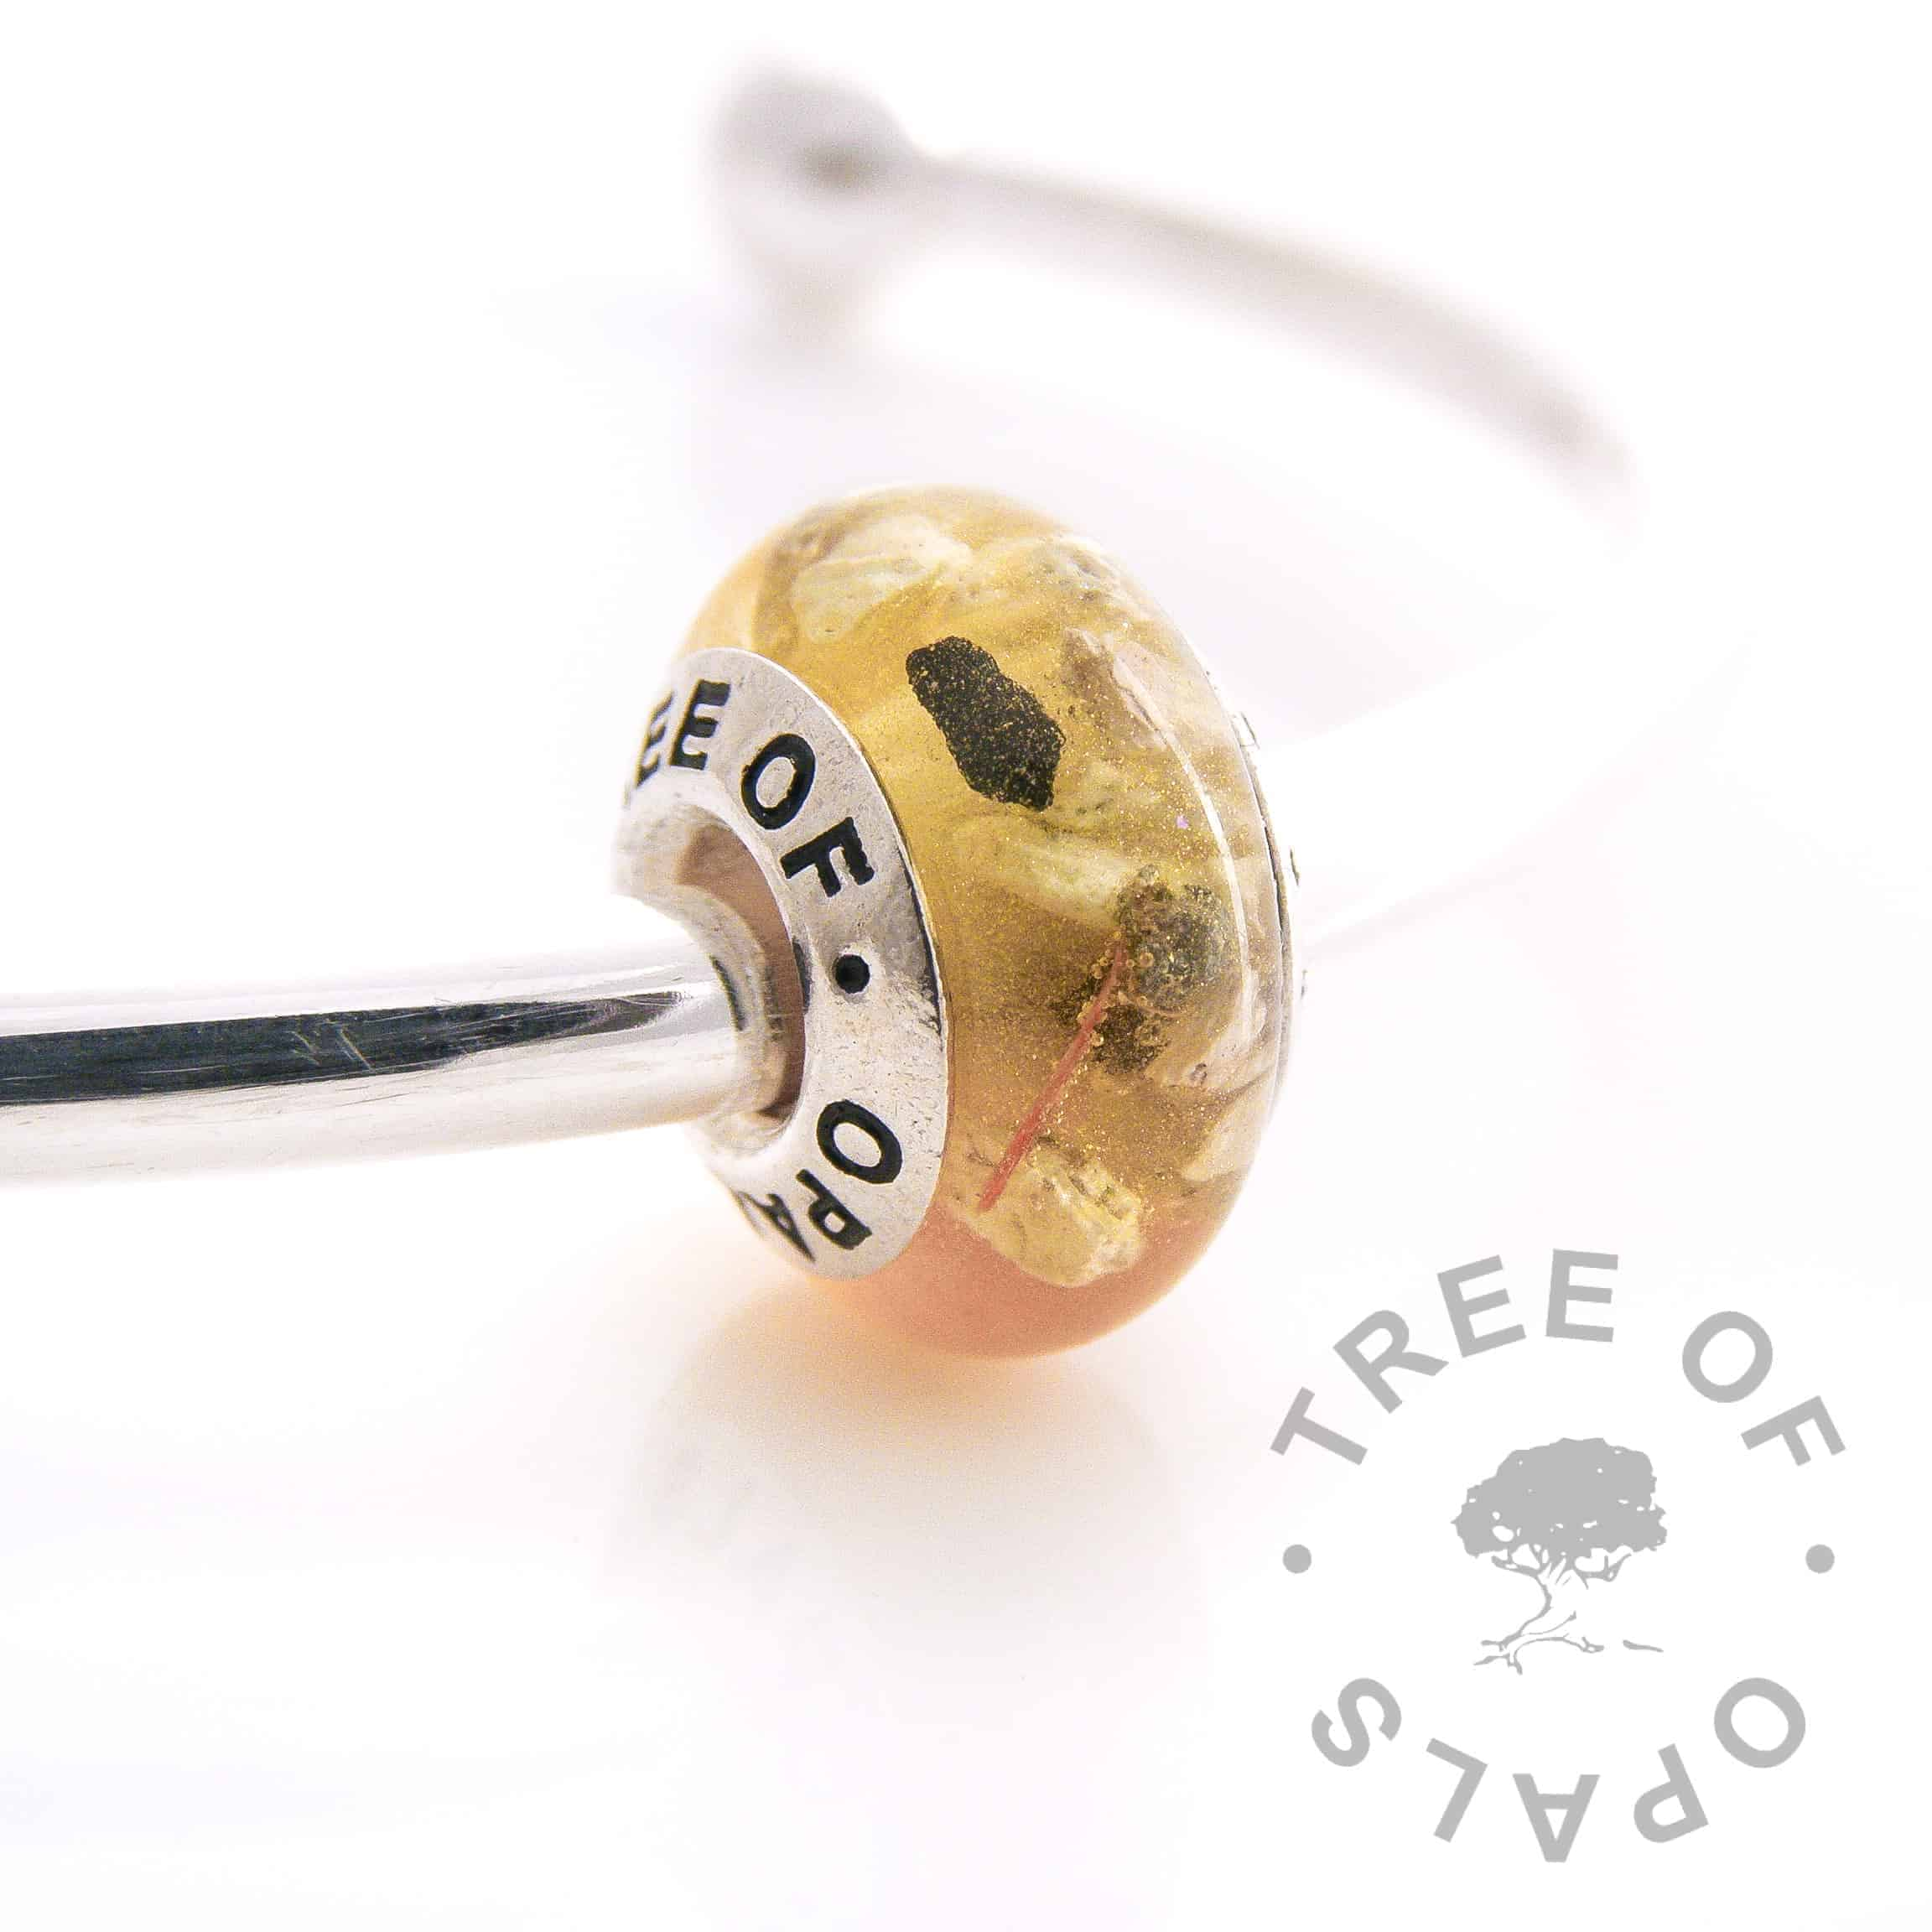 cremation ash and daffodil flower charm bead, daffodil petals with yellow shimmer powder subtle. Solid sterling silver signature Tree of Opals core